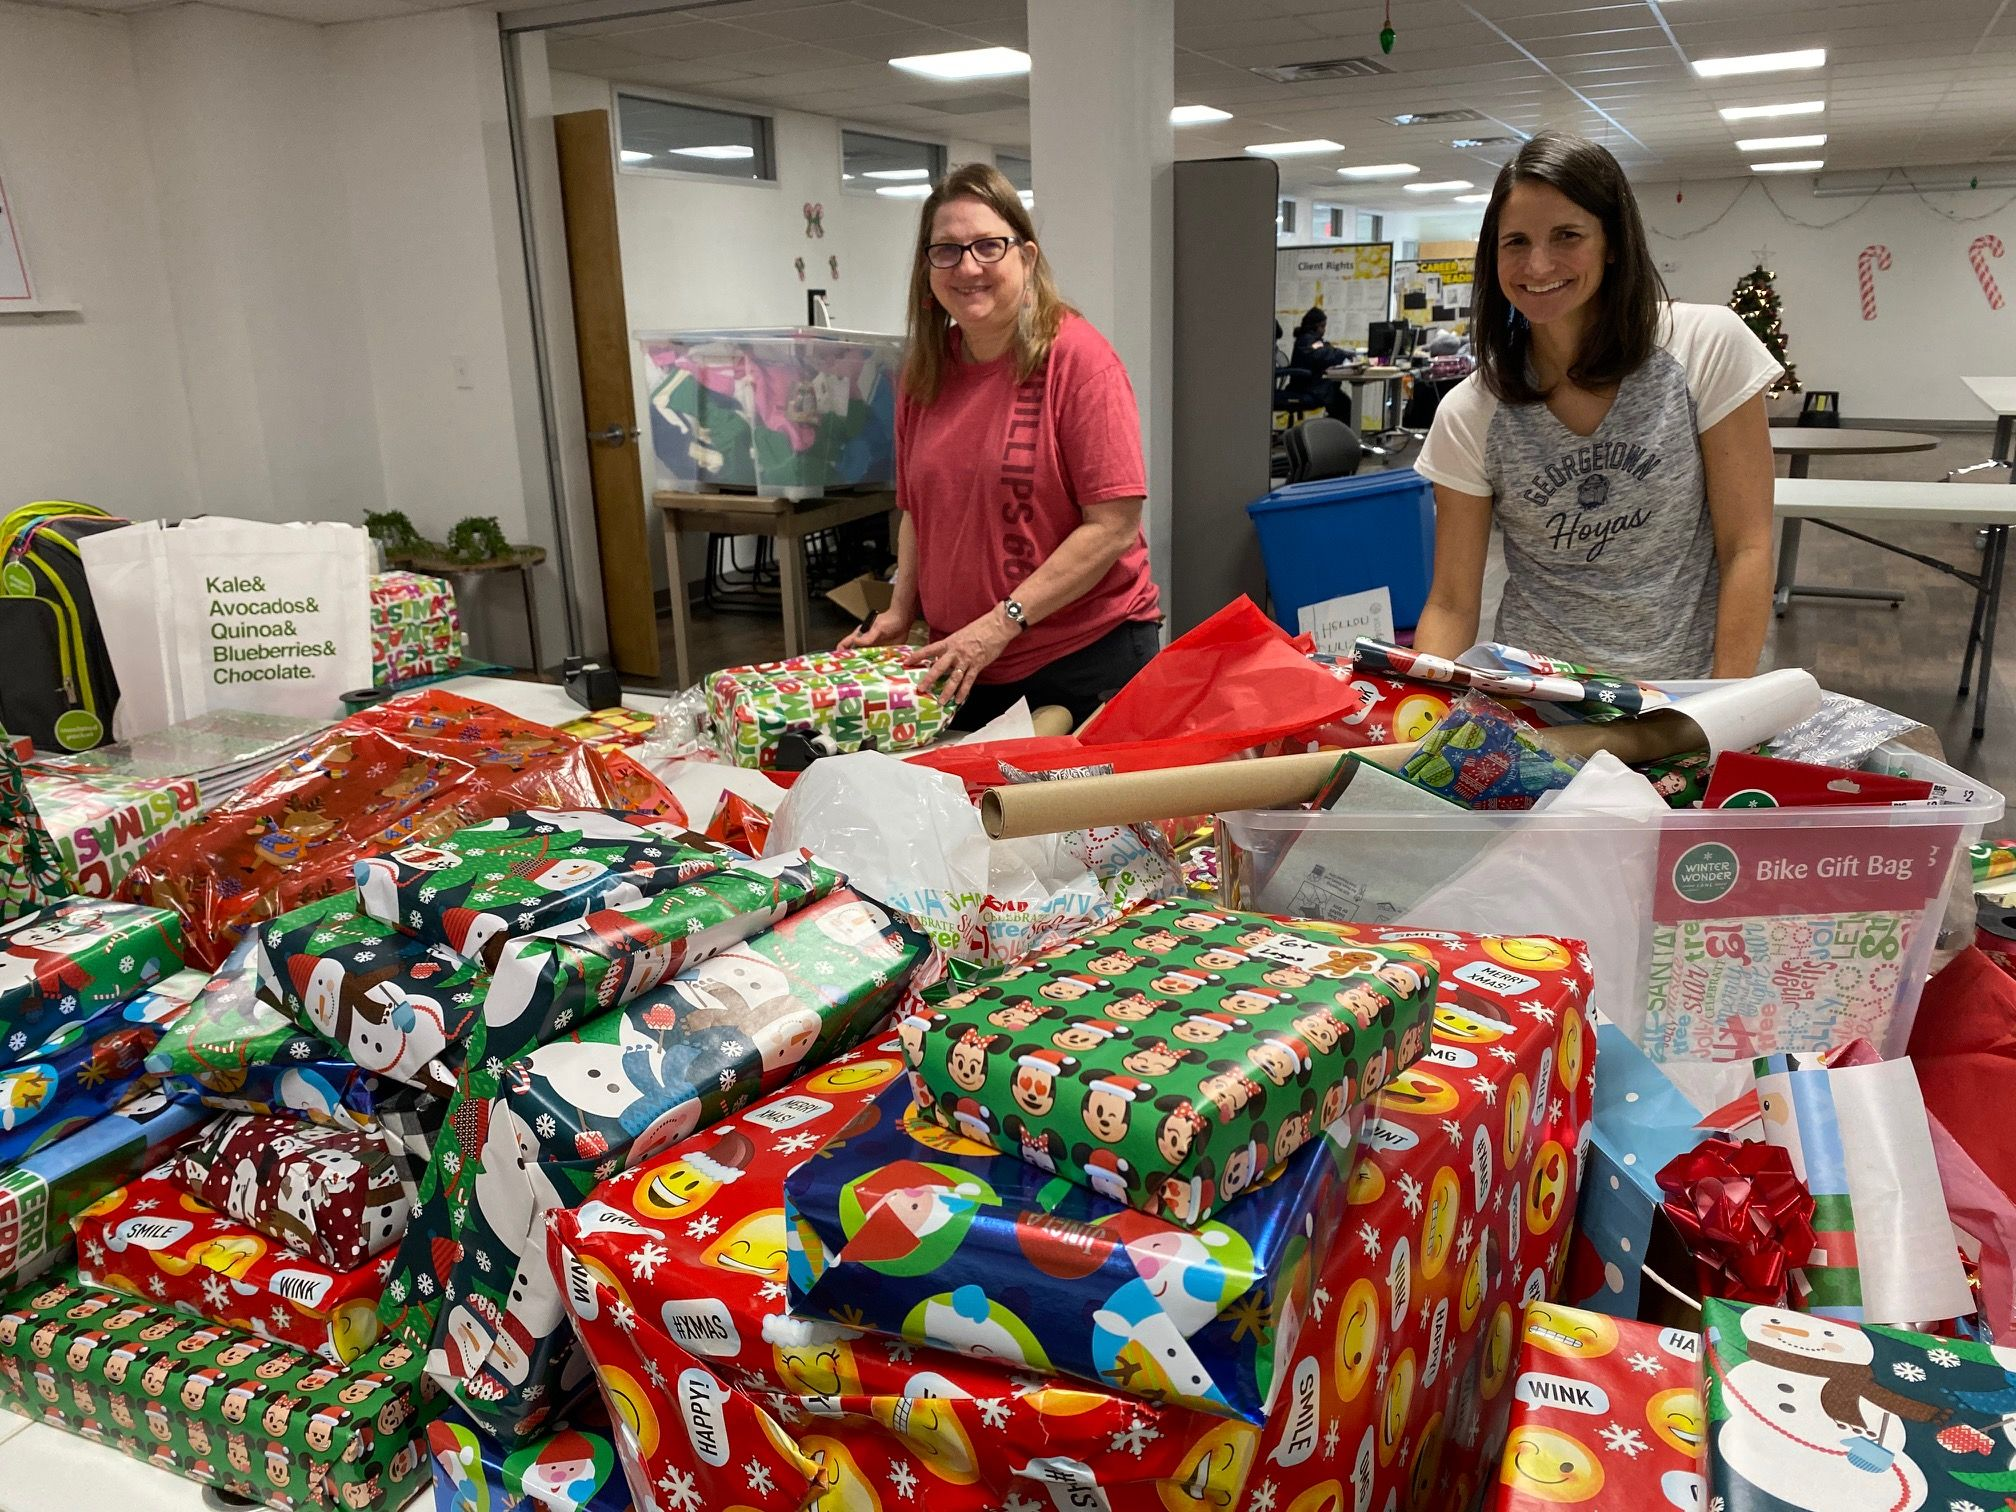 Two volunteers show a table full of wrapped presents